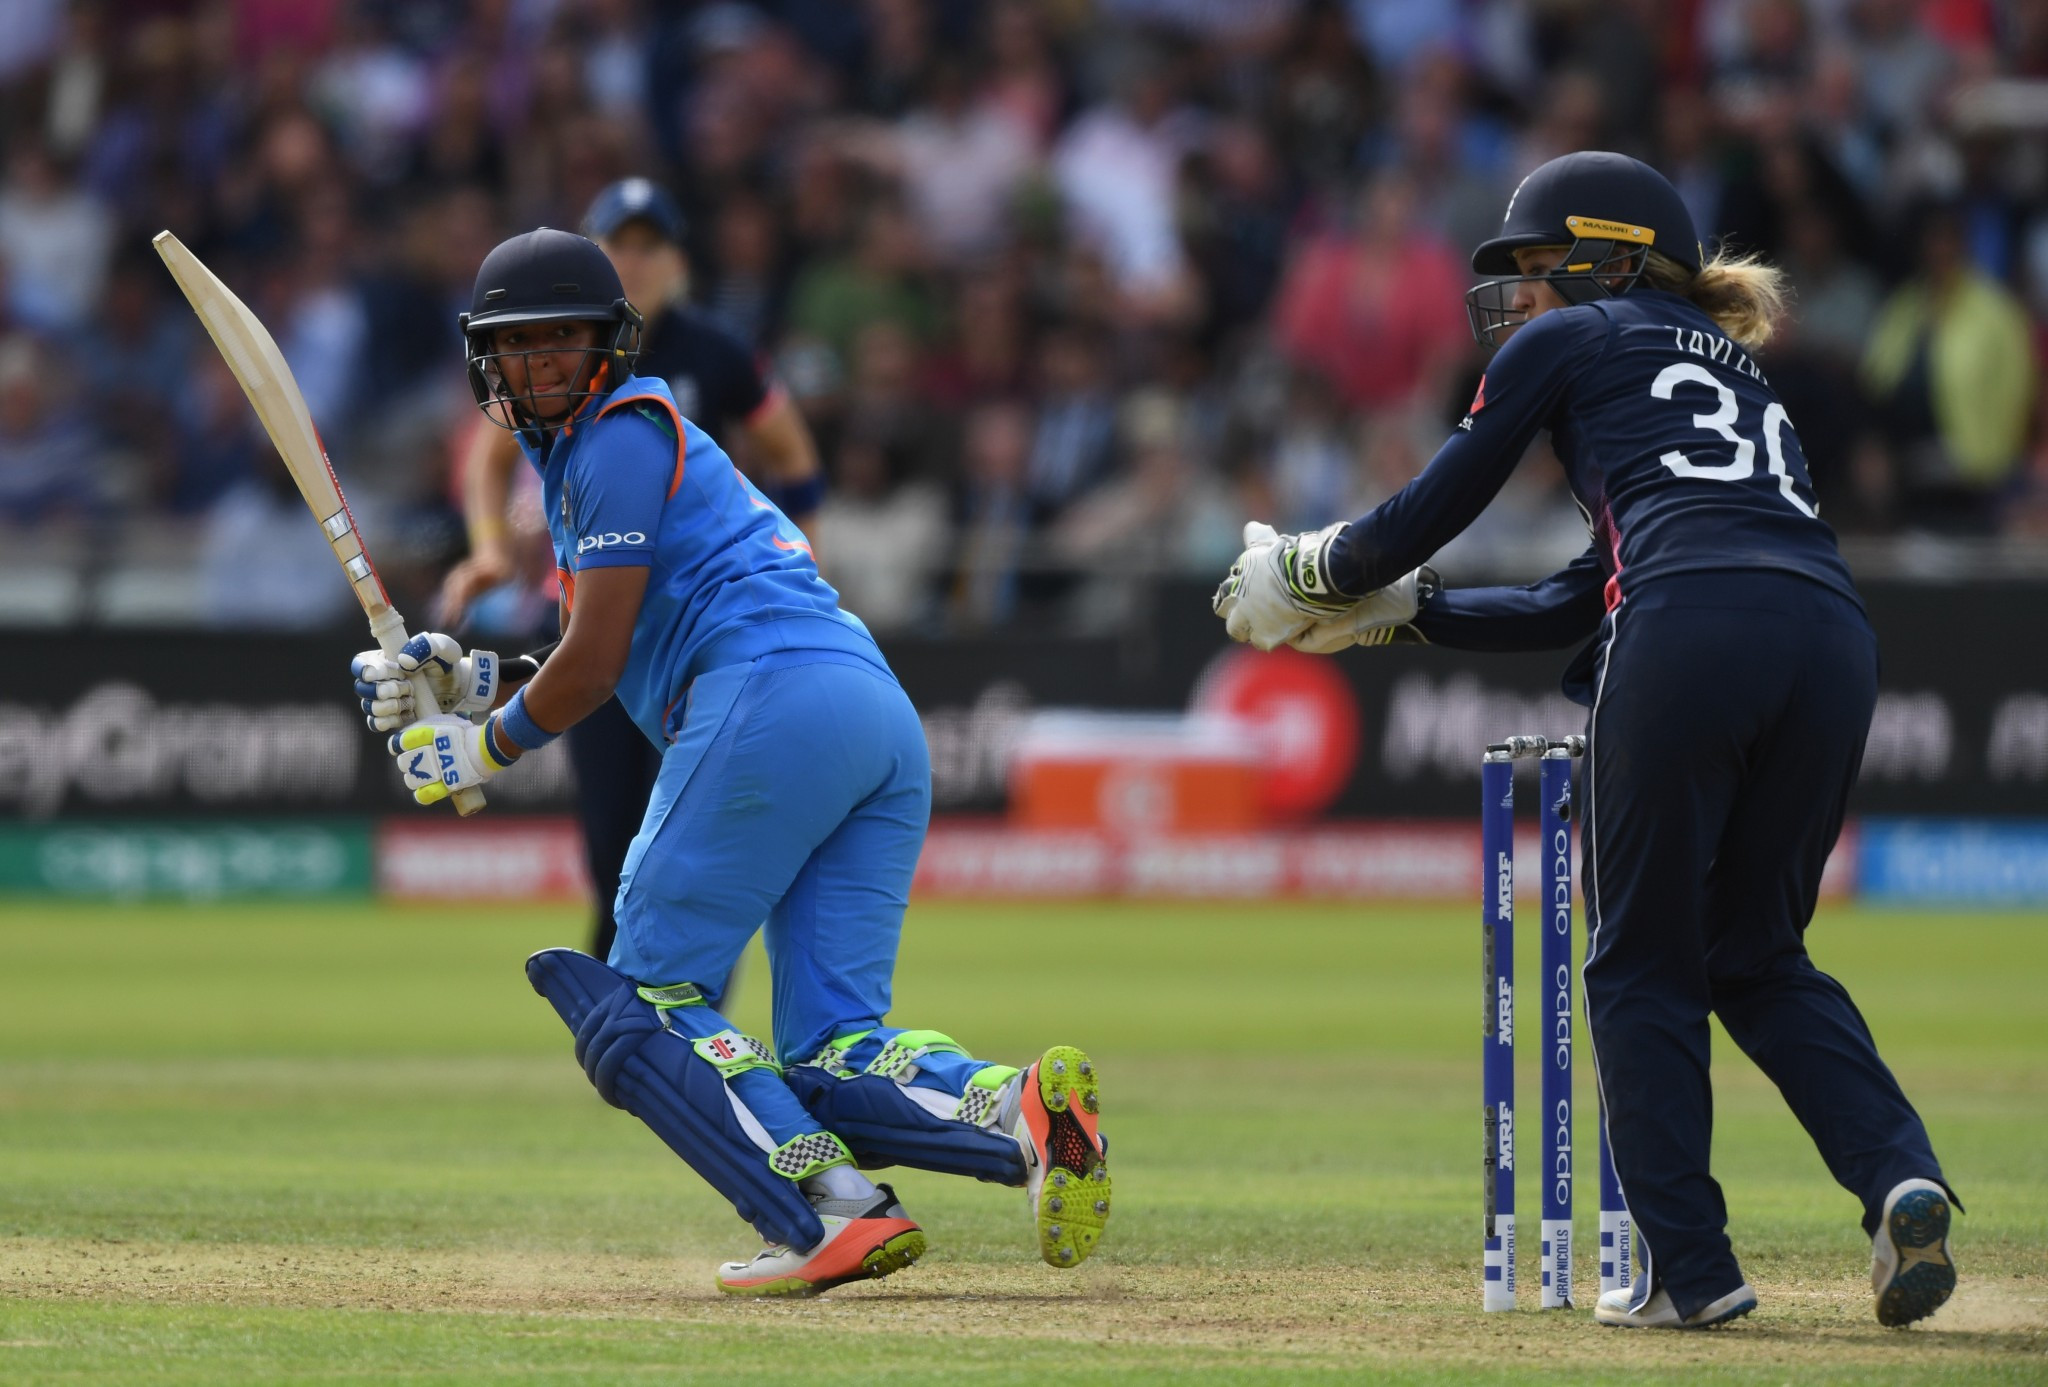 Women's cricket was exepcted to be part of the Commonwealth Games programme in 2022 but is now set not to appear whether Birmingham or Liverpool host it ©Getty Images